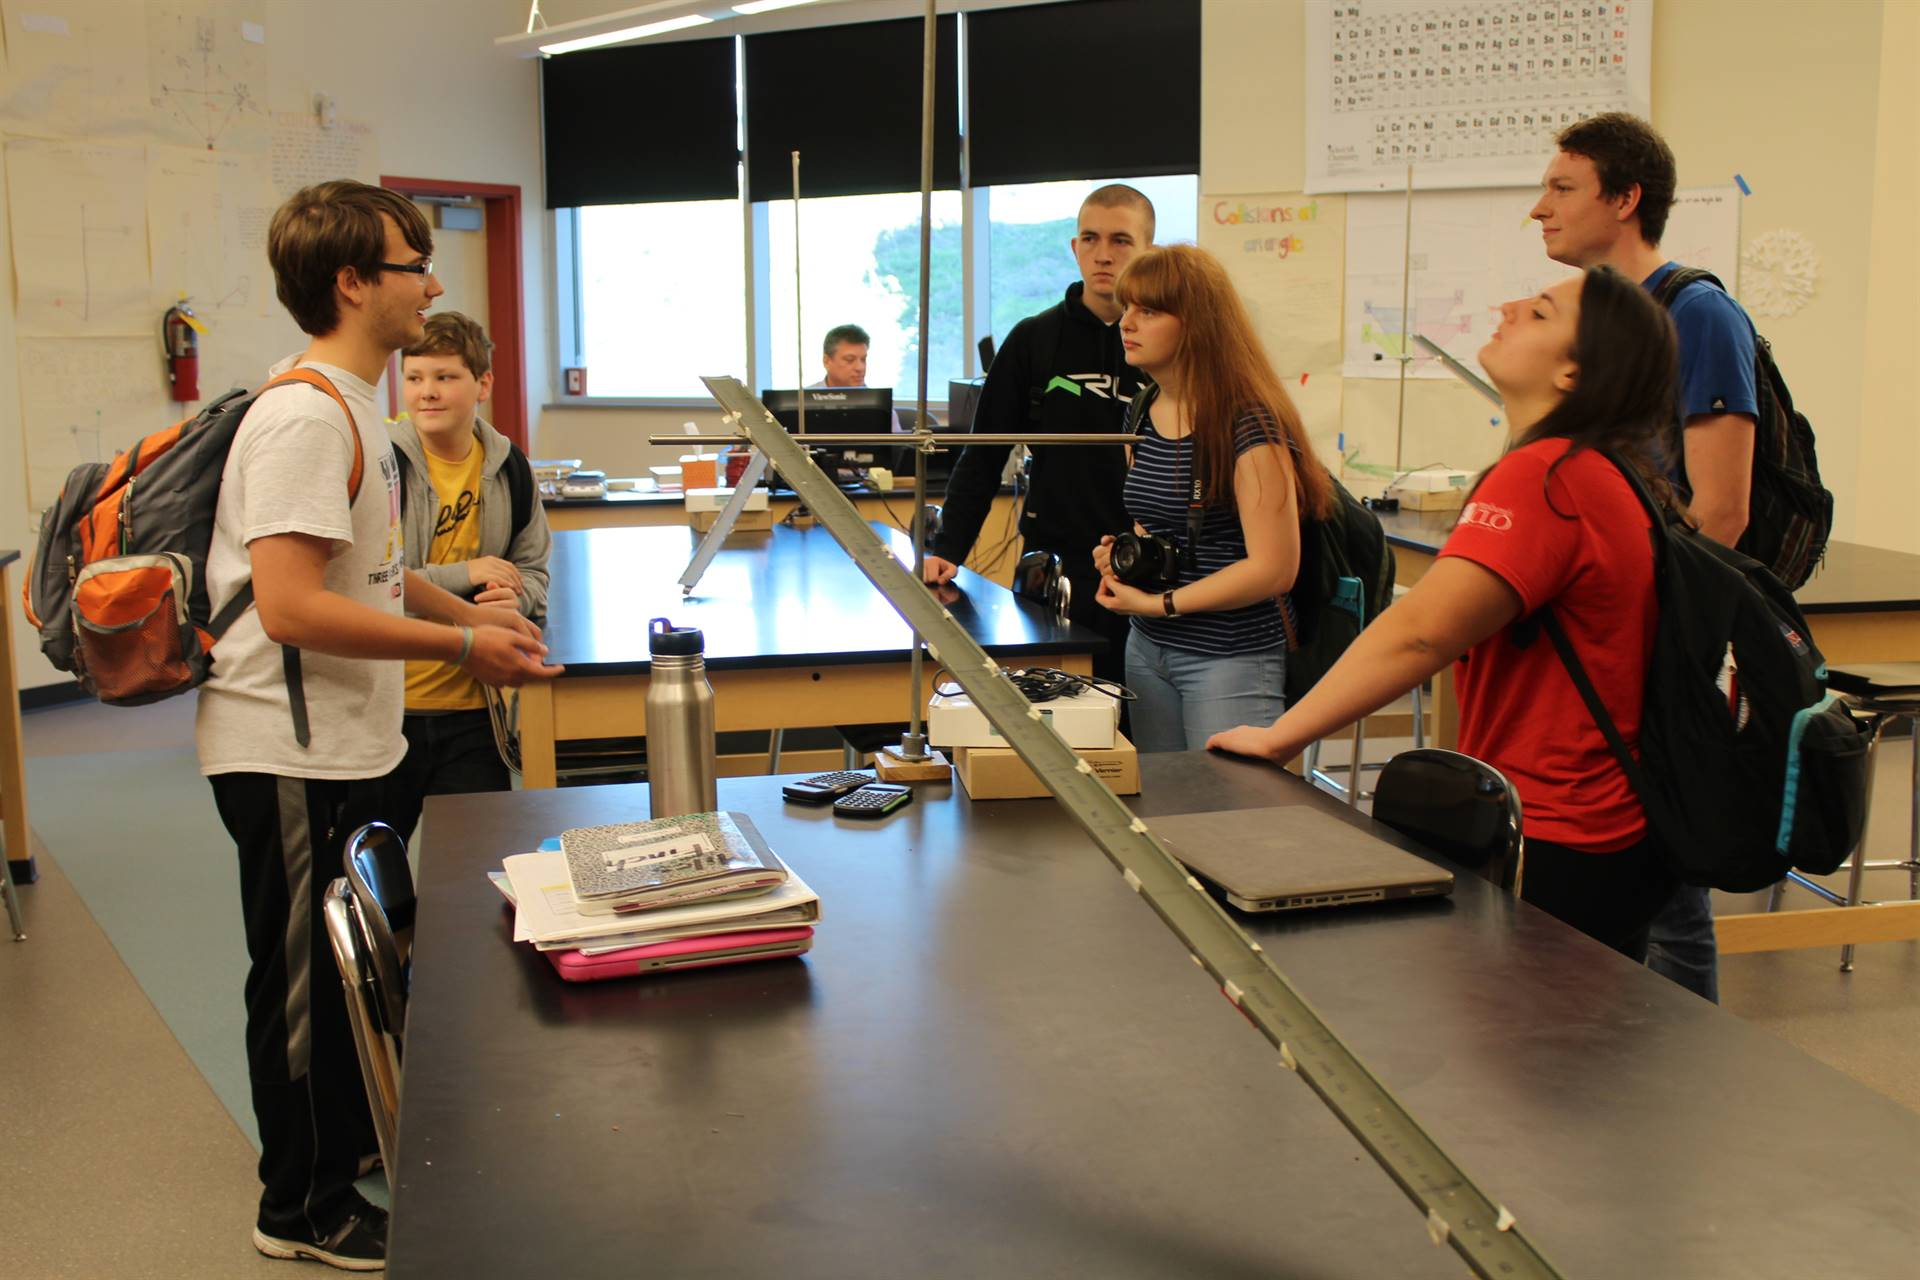 Touring a Science Lab